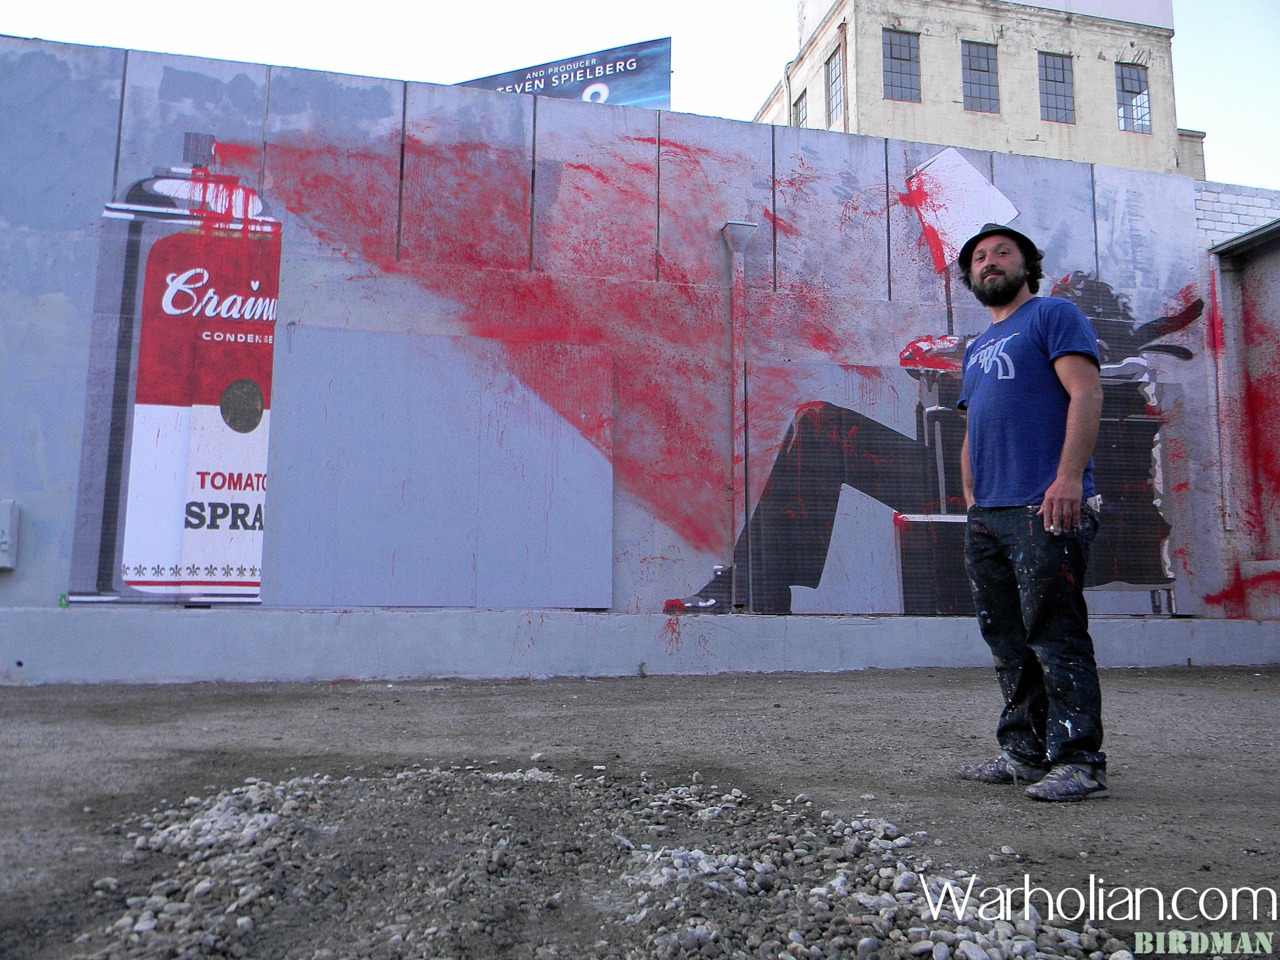 Mr. Brainwash recently opened his show in Los Angeles and Warholian's own Keisha Raines and Birdman Photos were there to document the event! Enjoy! http://warholian.com/2012/01/09/mr-brainwash/